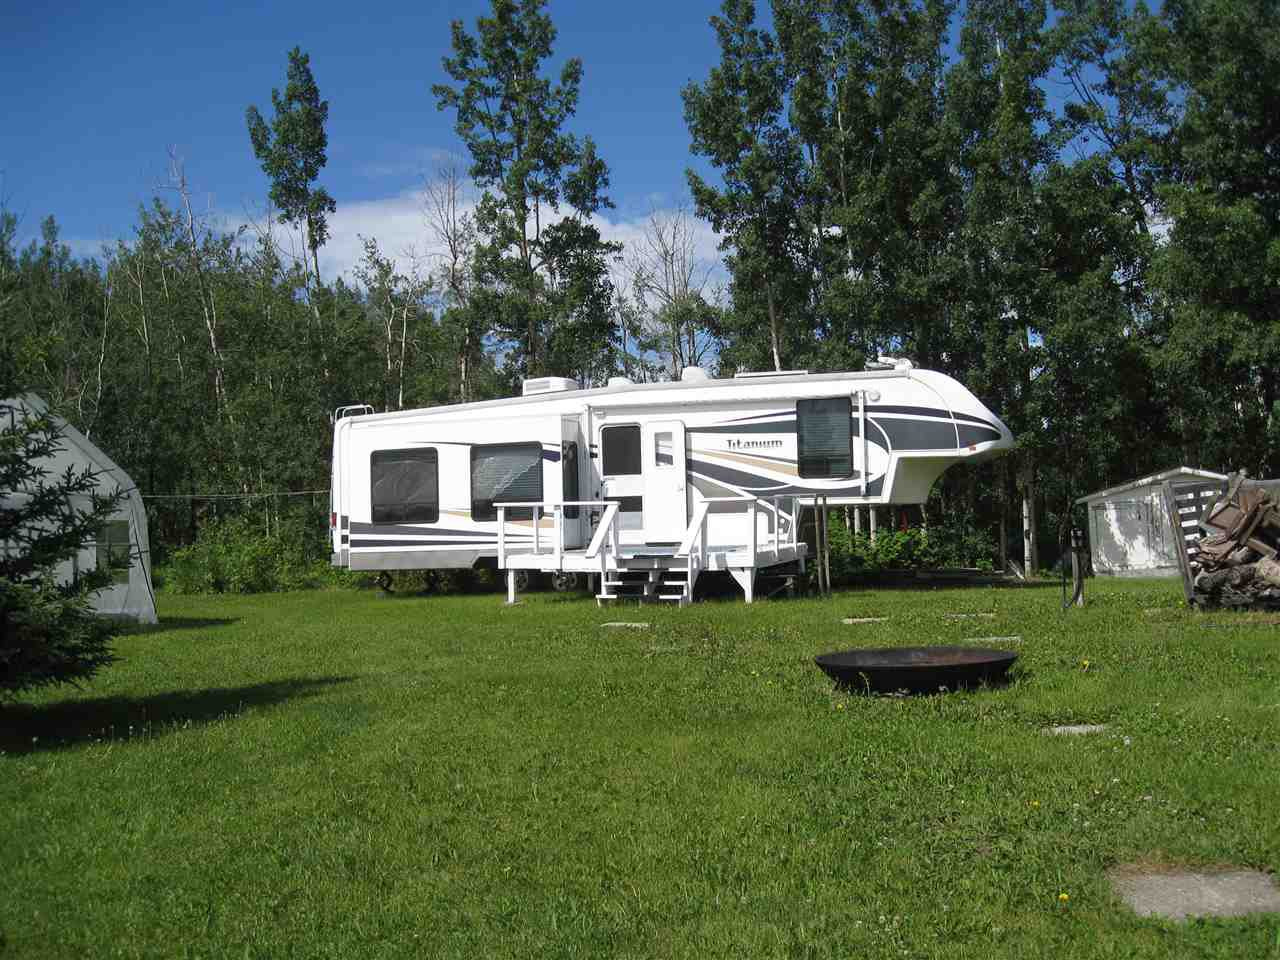 Main Photo: West of HWY 22 On Twp Rd 544: Rural Yellowhead Rural Land/Vacant Lot for sale : MLS®# E4162241